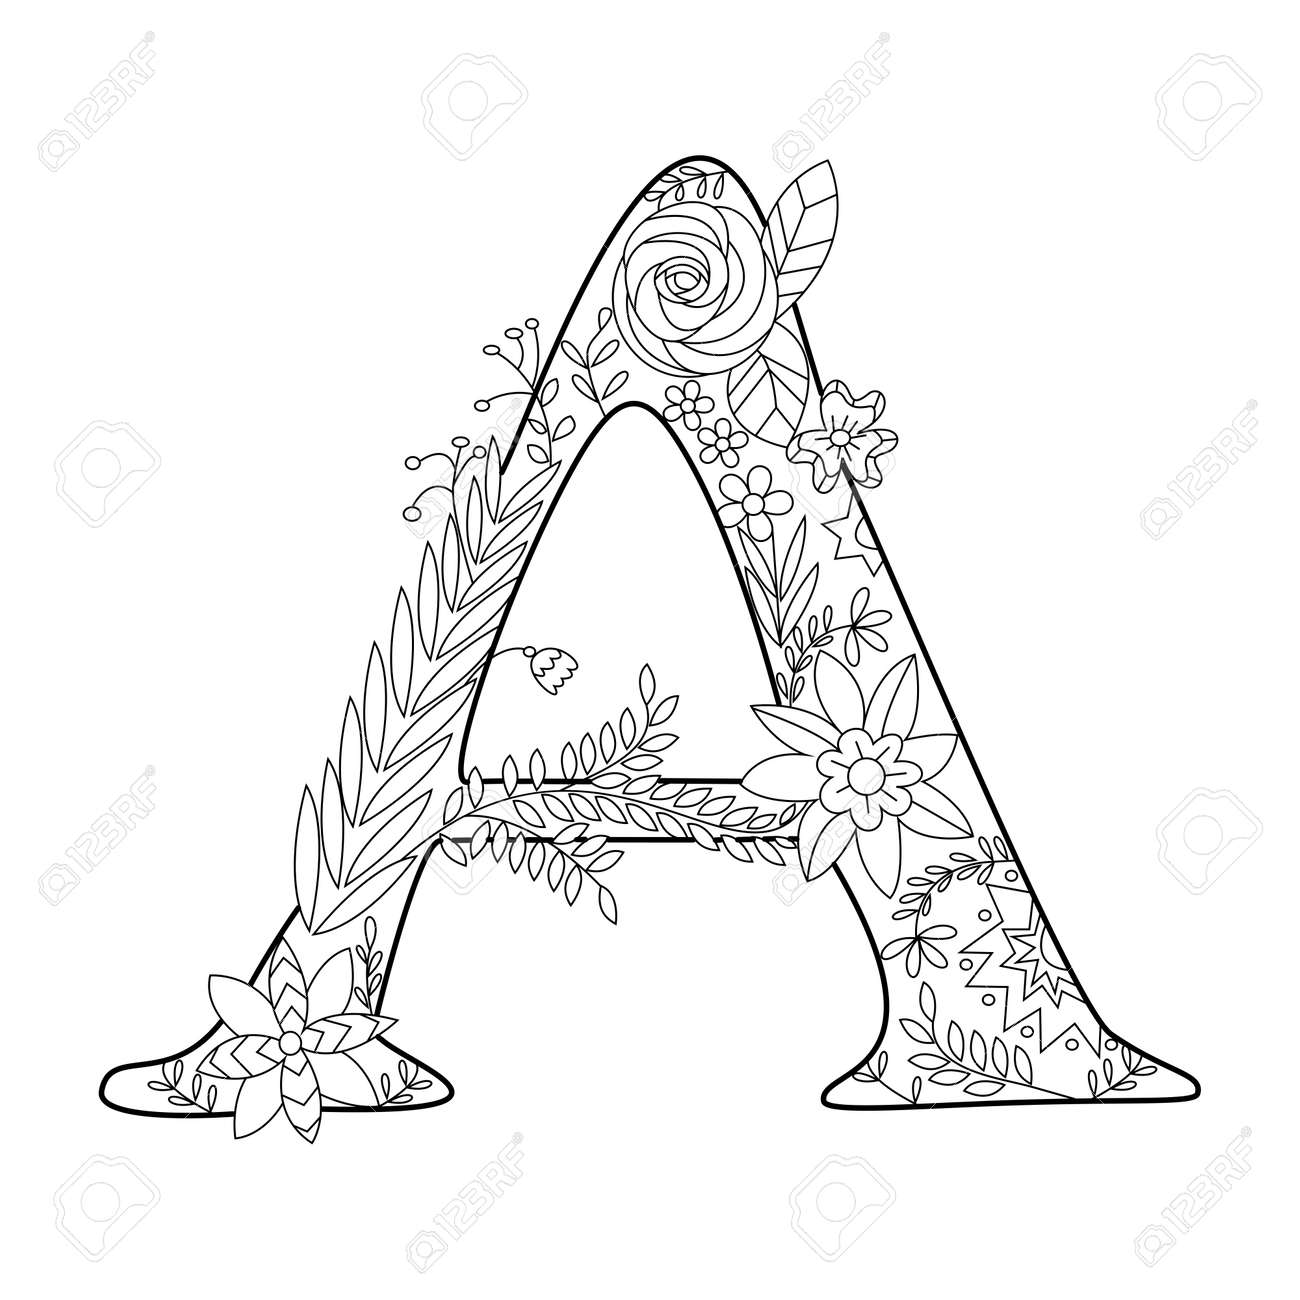 Floral Alphabet Letter Coloring Book For Adults Vector Illustration